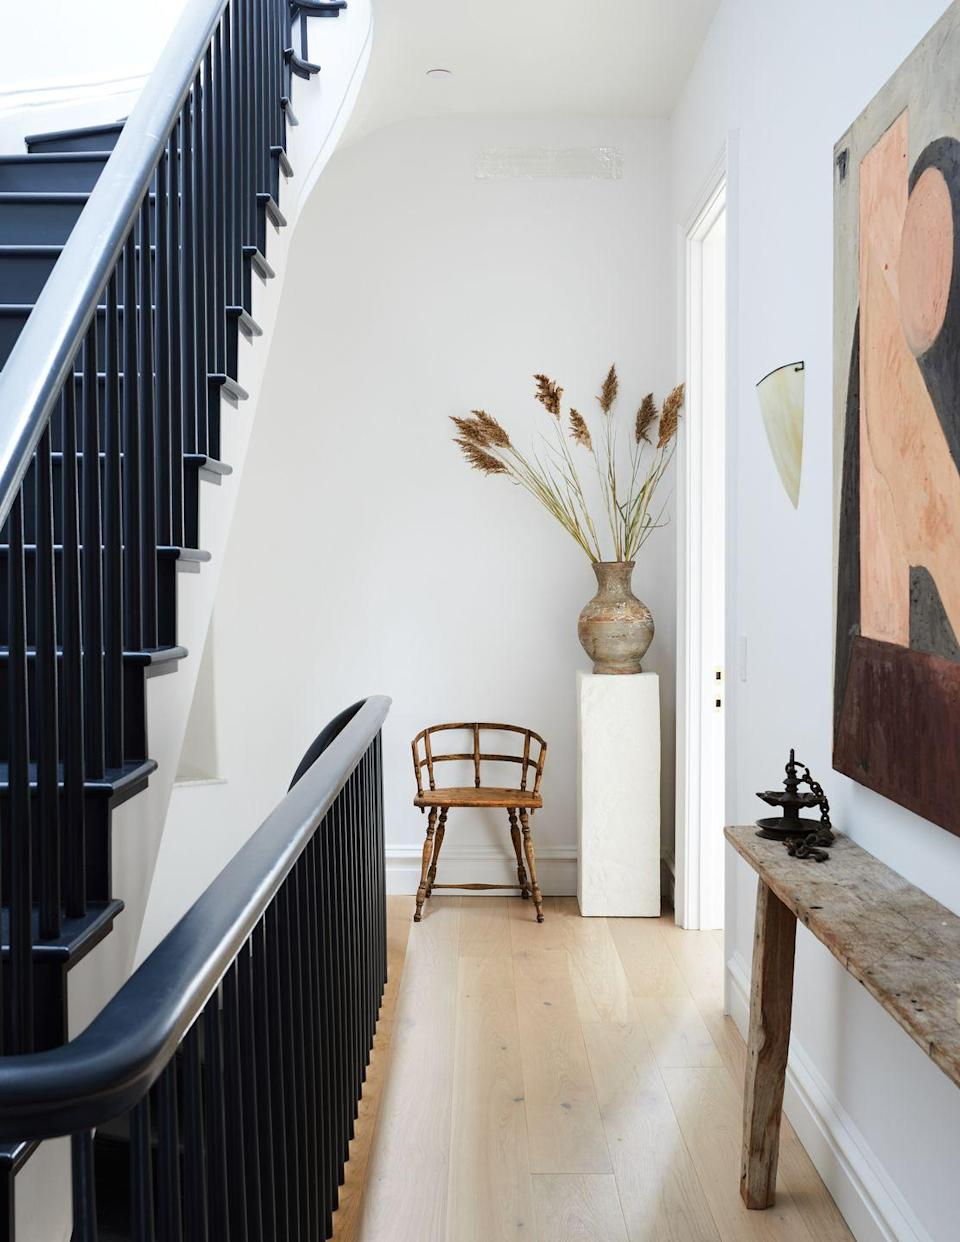 """<p><em>EyeSwoon</em>'s Athena Calderone makes the most of every square inch of <a href=""""https://www.veranda.com/luxury-lifestyle/books-to-read/g32601137/athena-calderone-eyeswoon-house/"""" rel=""""nofollow noopener"""" target=""""_blank"""" data-ylk=""""slk:her Cobble Hill townhouse"""" class=""""link rapid-noclick-resp"""">her Cobble Hill townhouse</a>, including the stairway. Black-painted stairs and bannister, white walls, and a collection of vintage and antique finds make this space yet another soothing and inspiring vignetter in her home.</p>"""